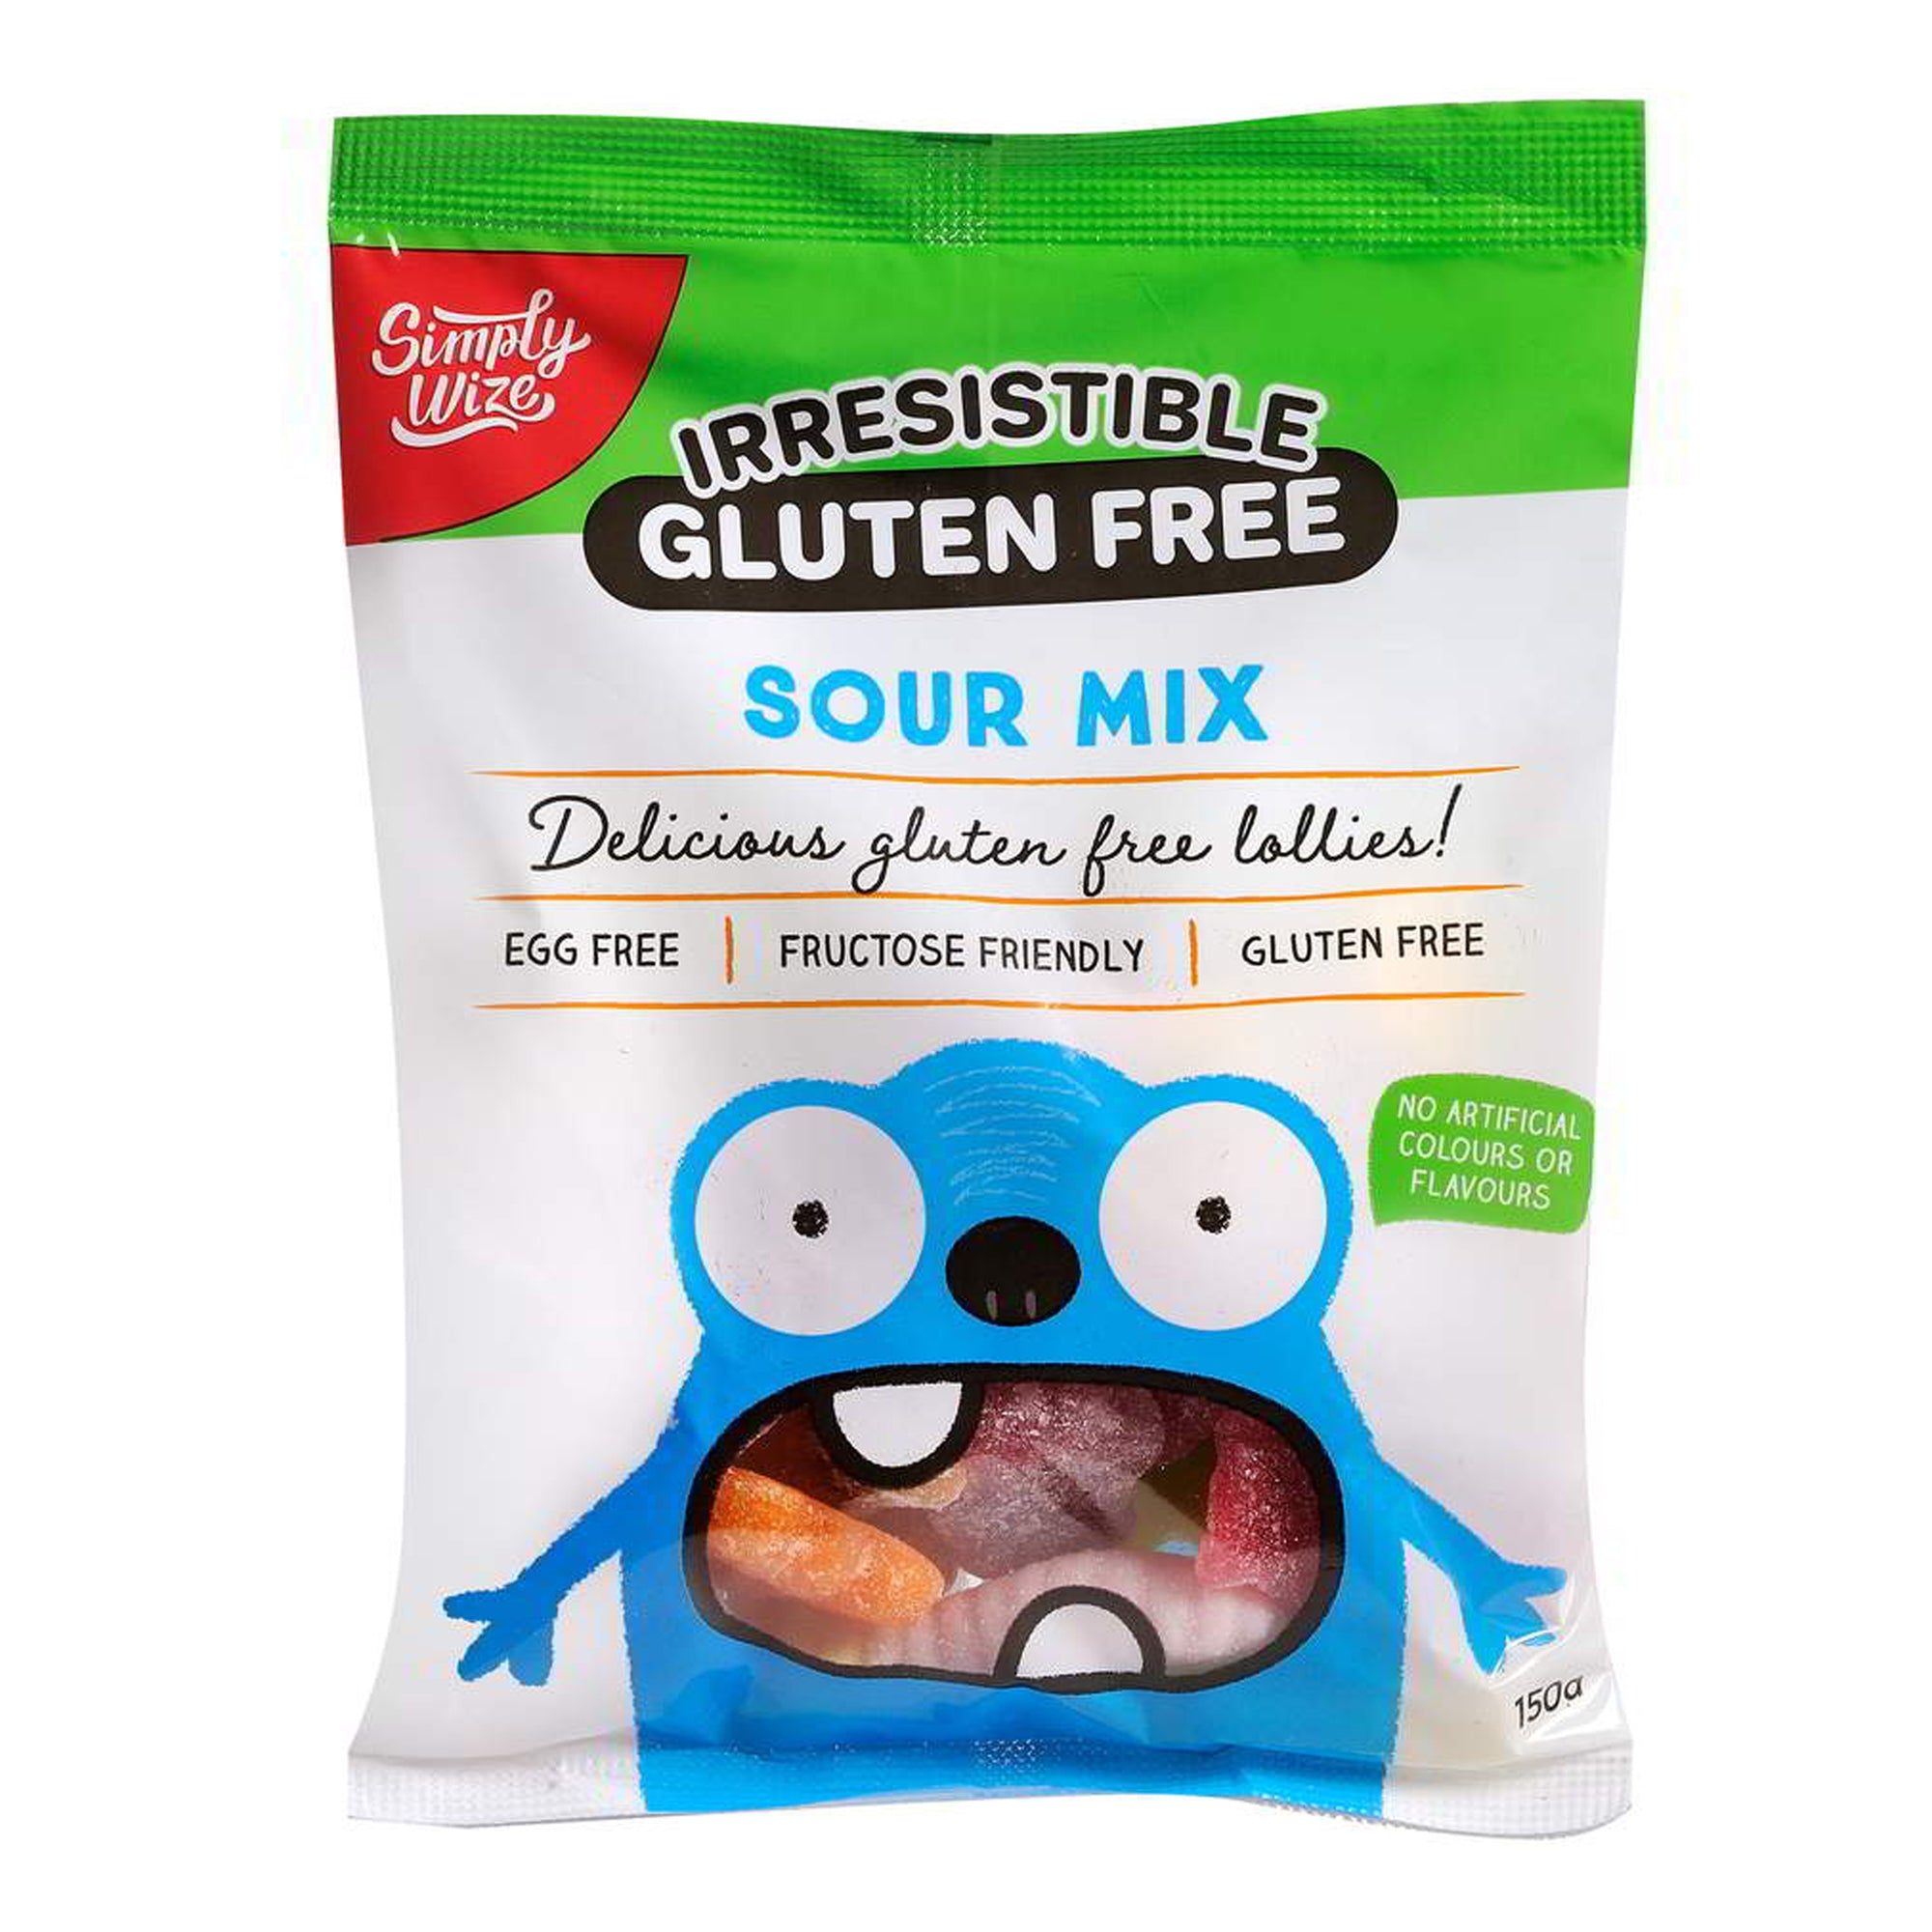 Simply Wize - Irresistible Sour Mix 150g